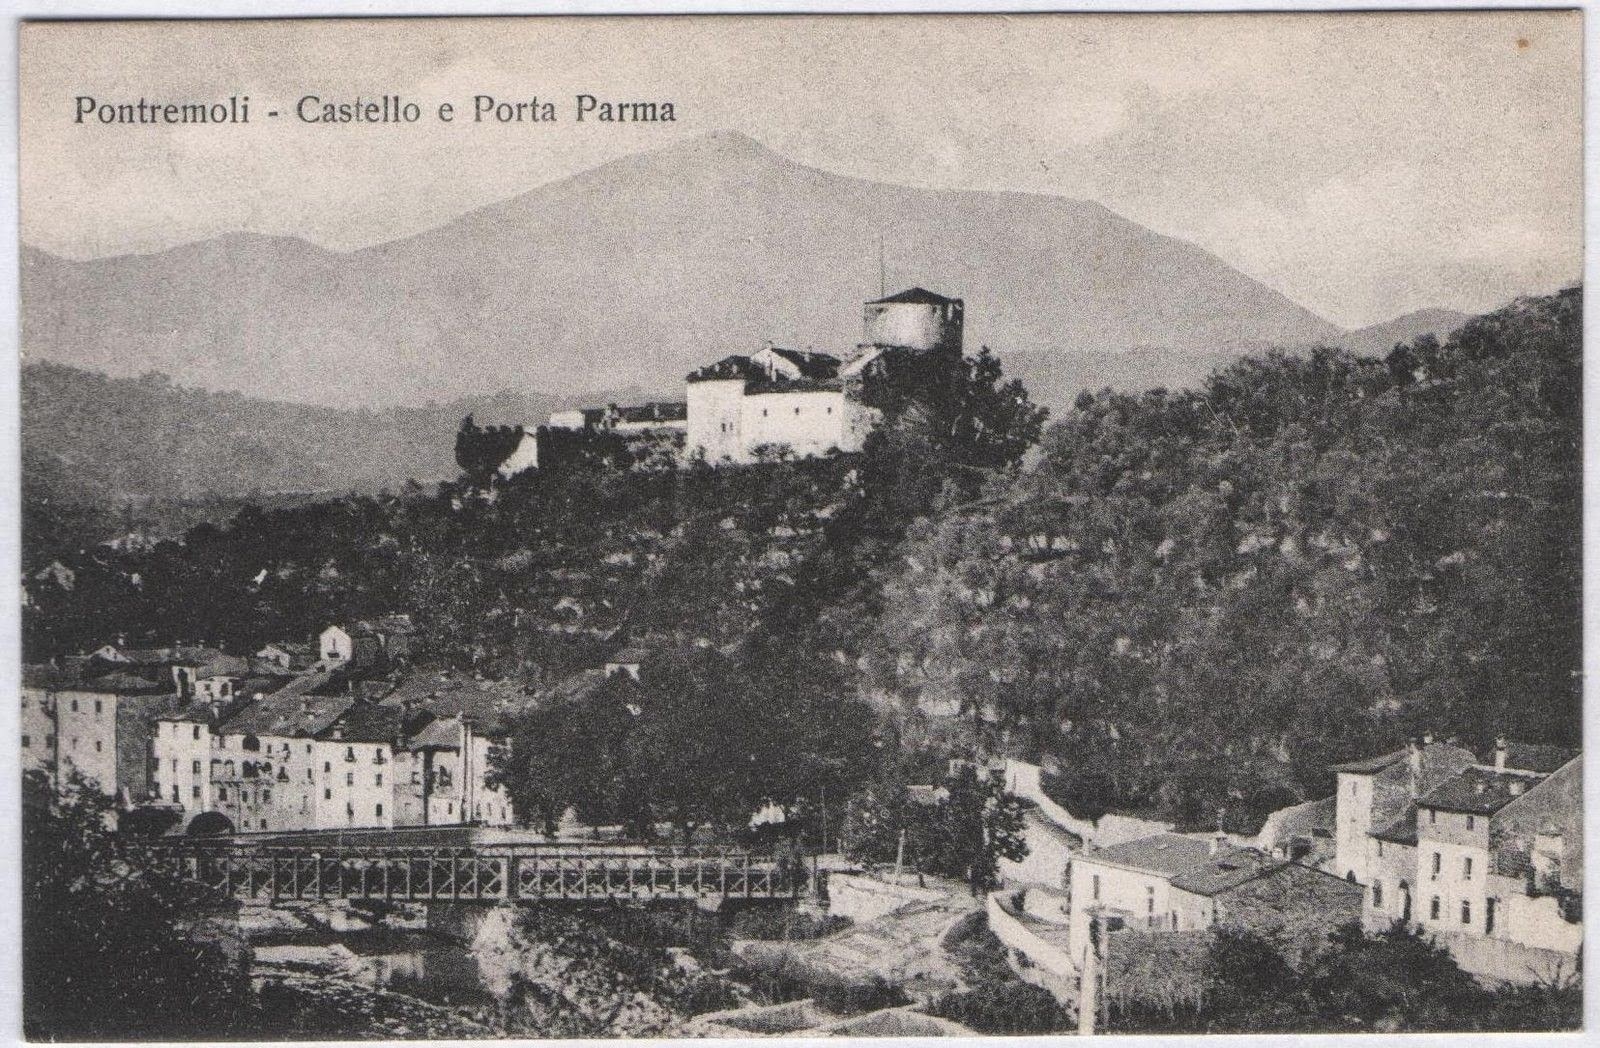 Old Pontremoli postcard with the Castle Piagnaro and Porta Parma